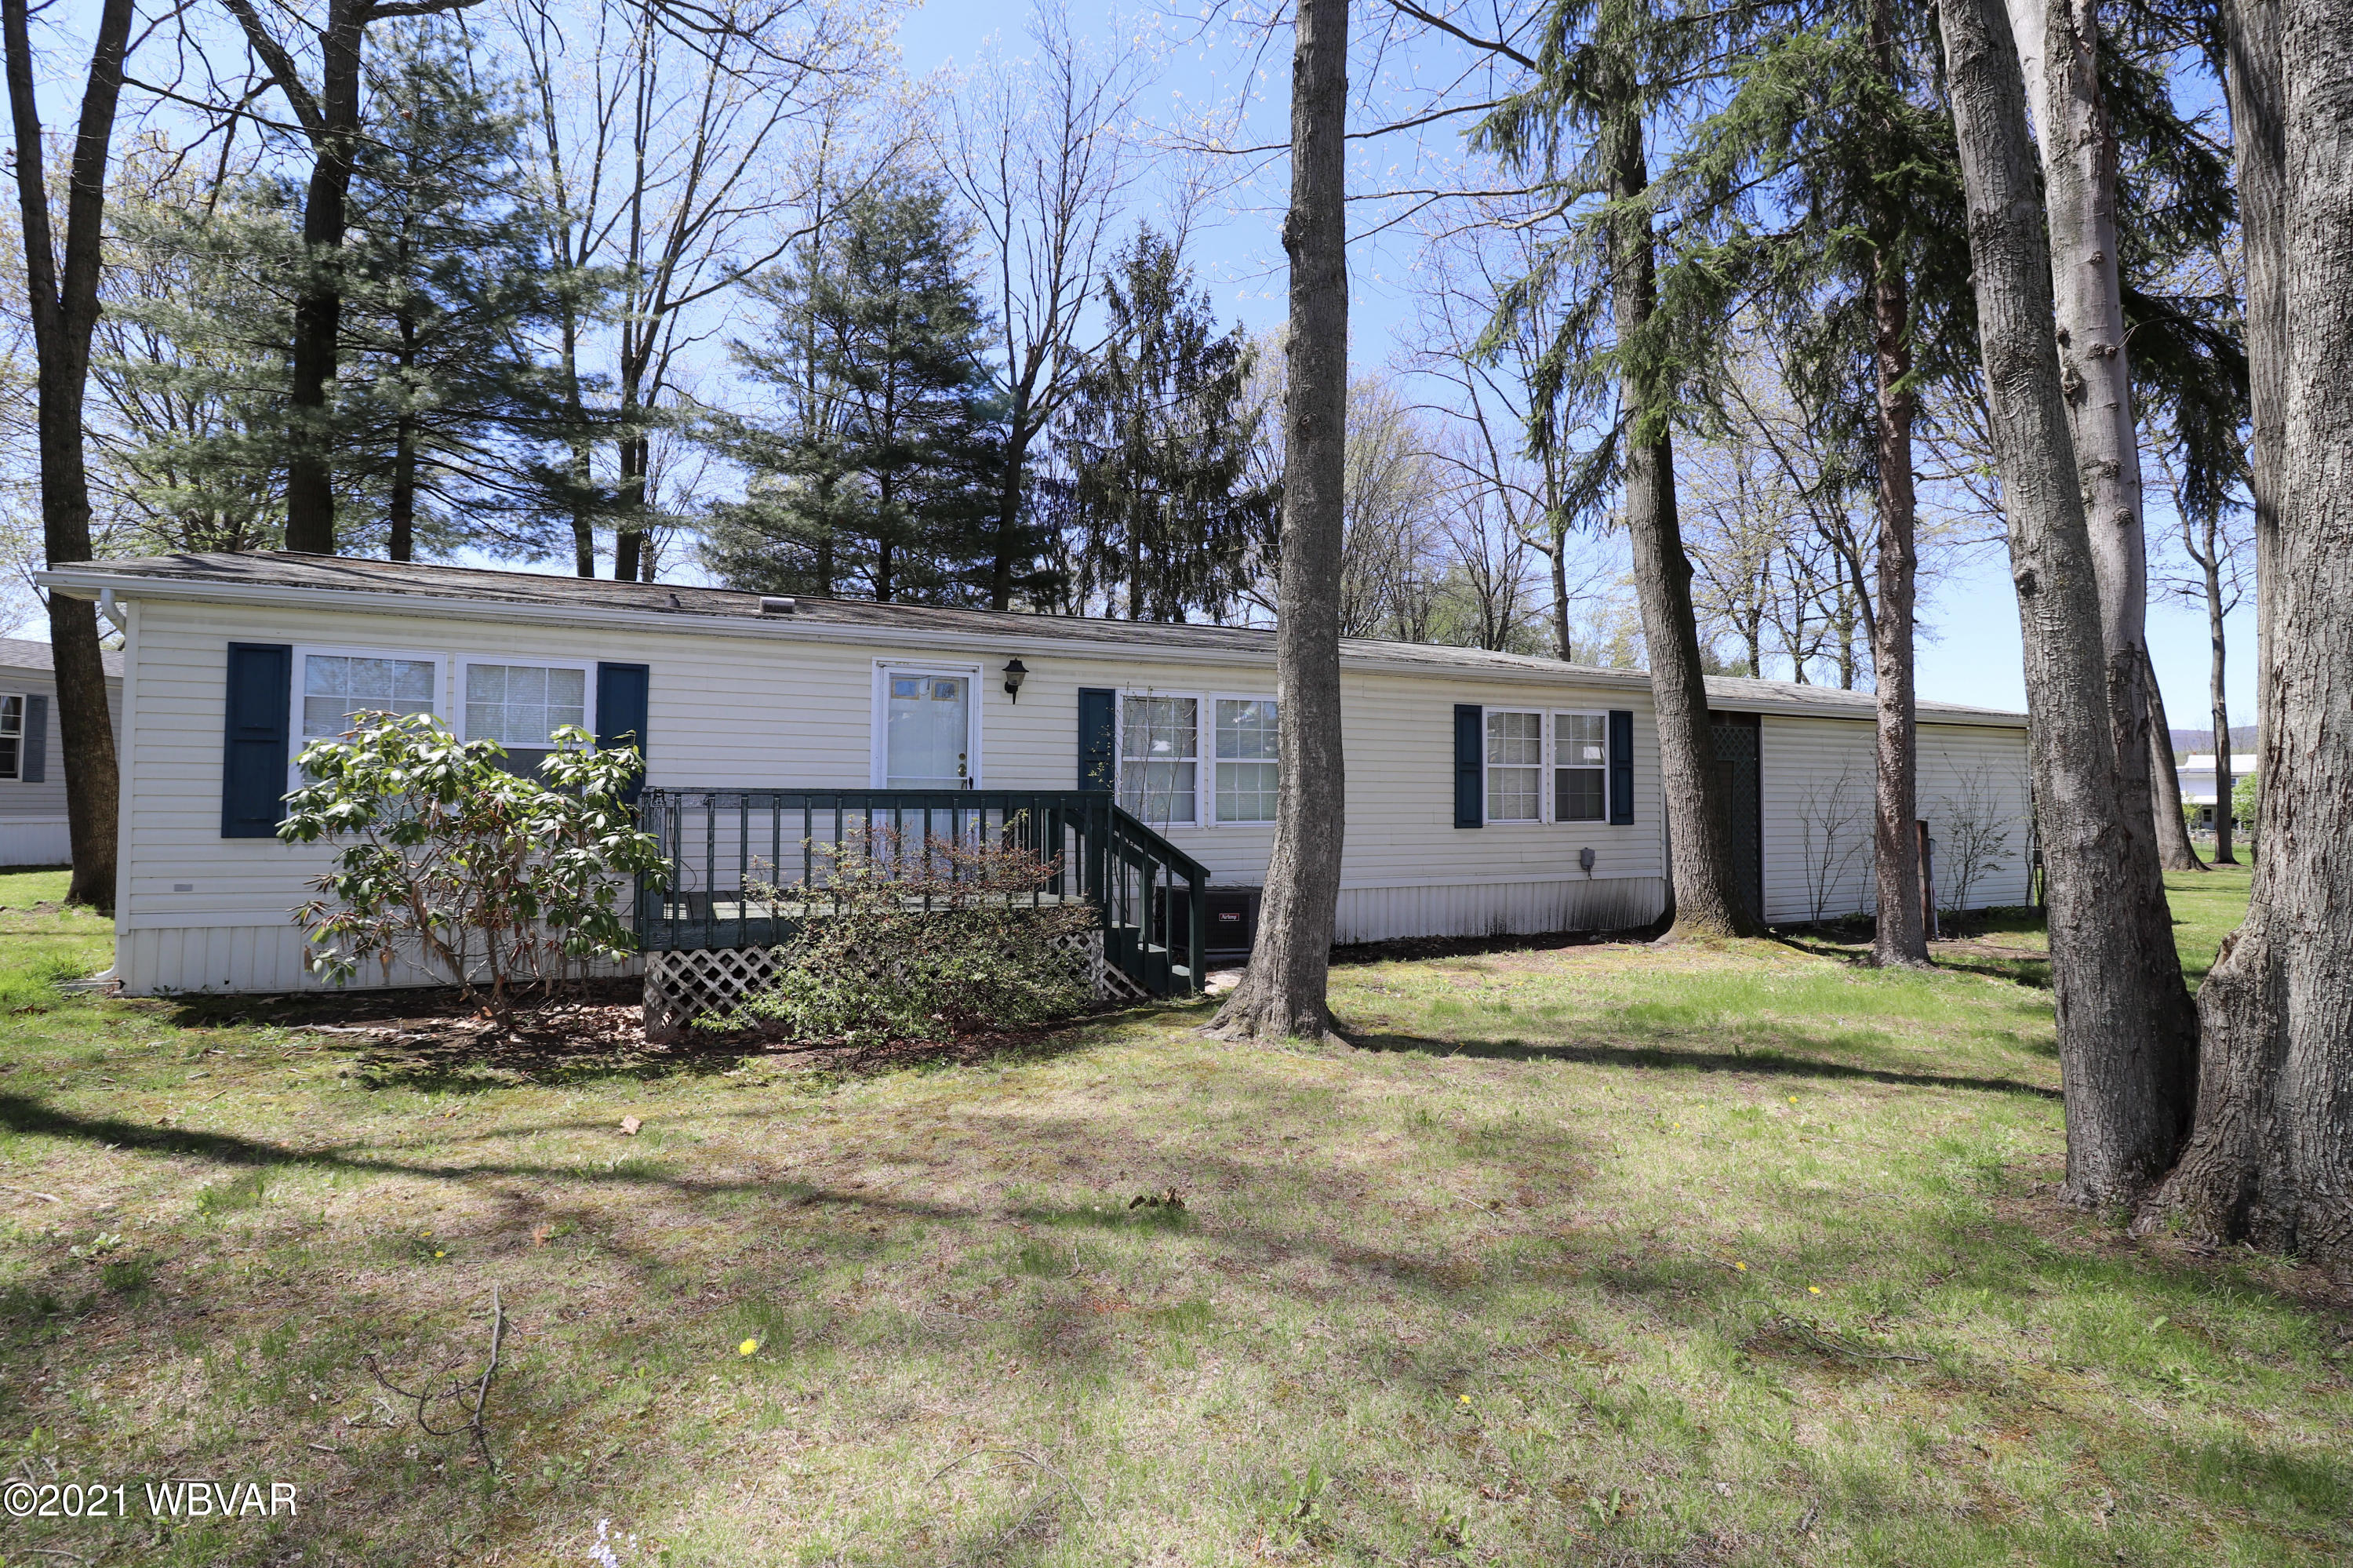 813 ELM ALLEY, McElhattan, PA 17748, 3 Bedrooms Bedrooms, ,2 BathroomsBathrooms,Residential,For sale,ELM,WB-92431